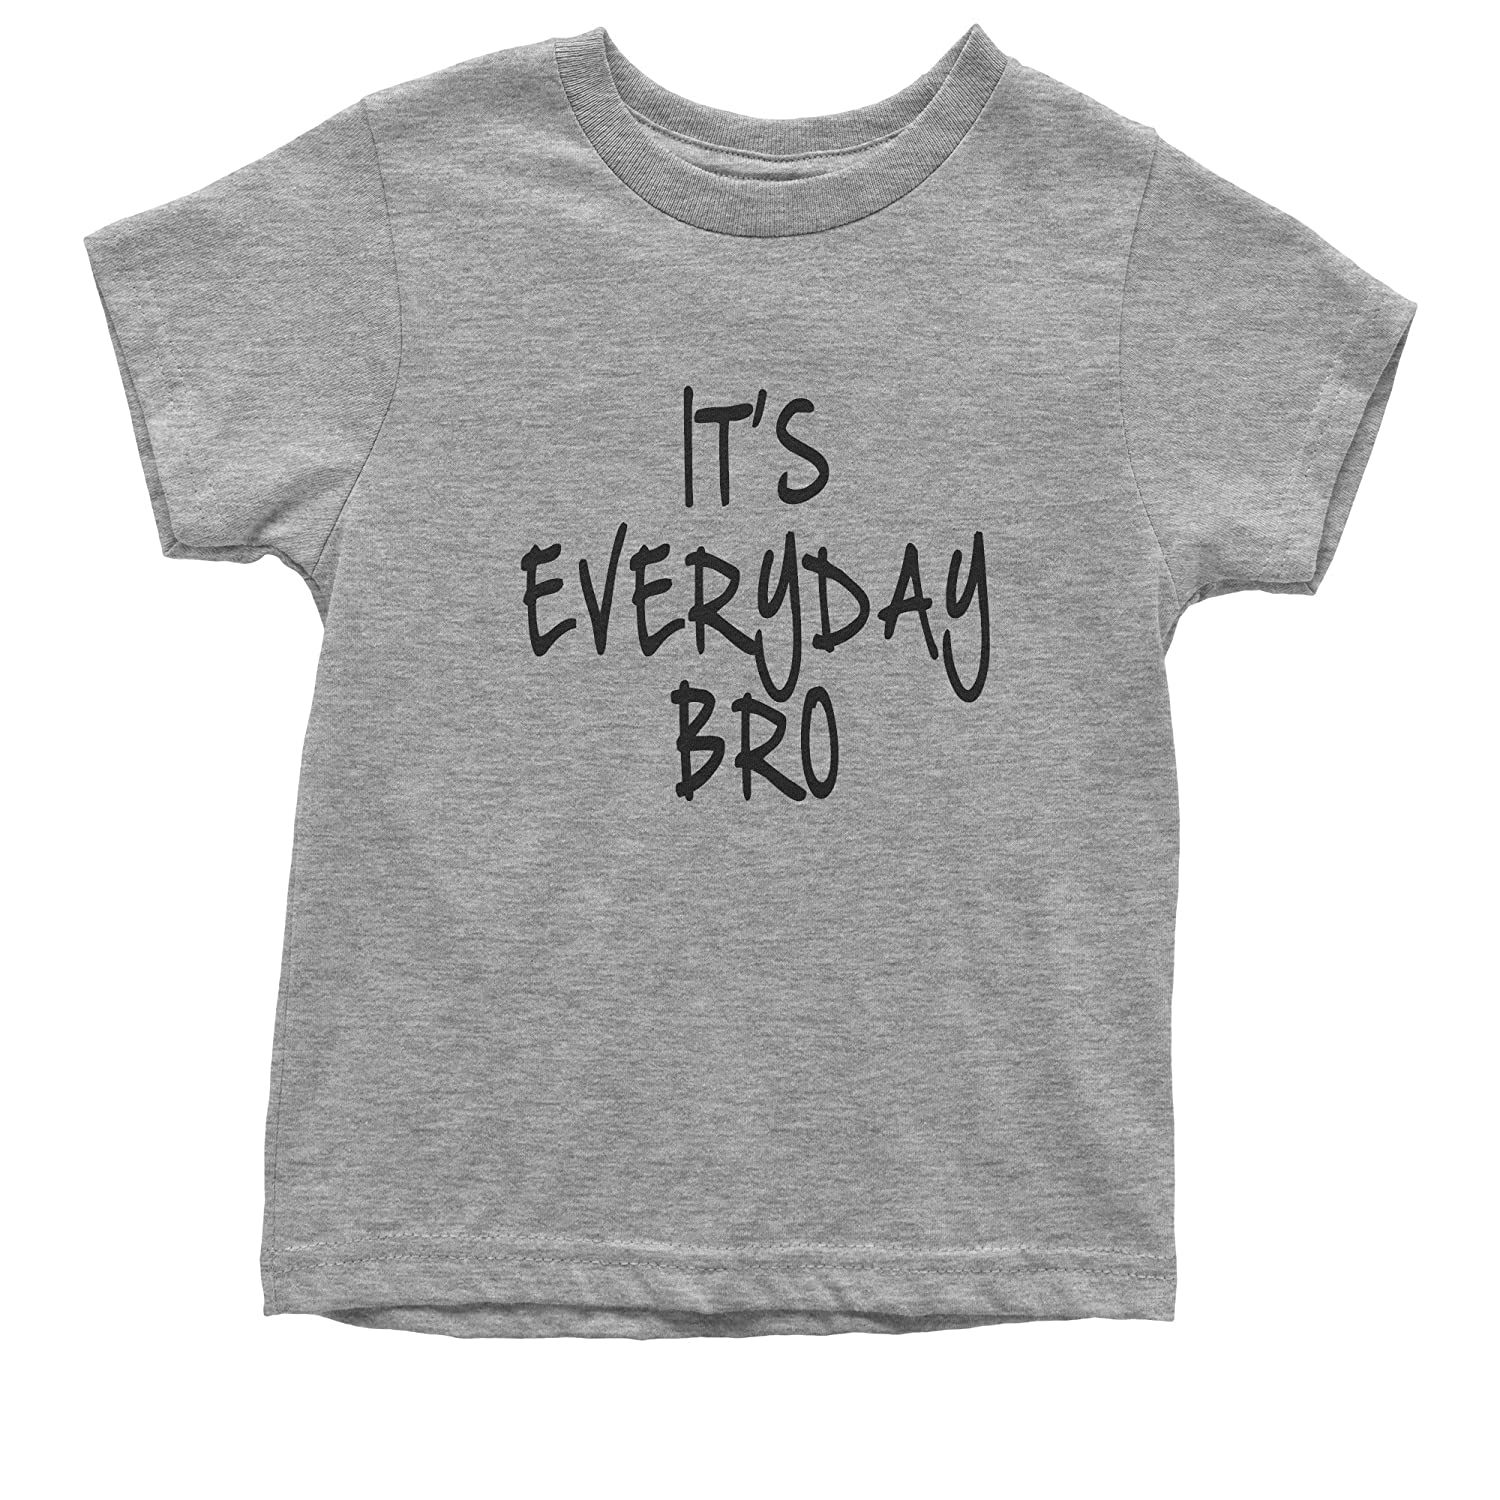 Expression Tees Its Everyday Bro Youth T-Shirt Black Print